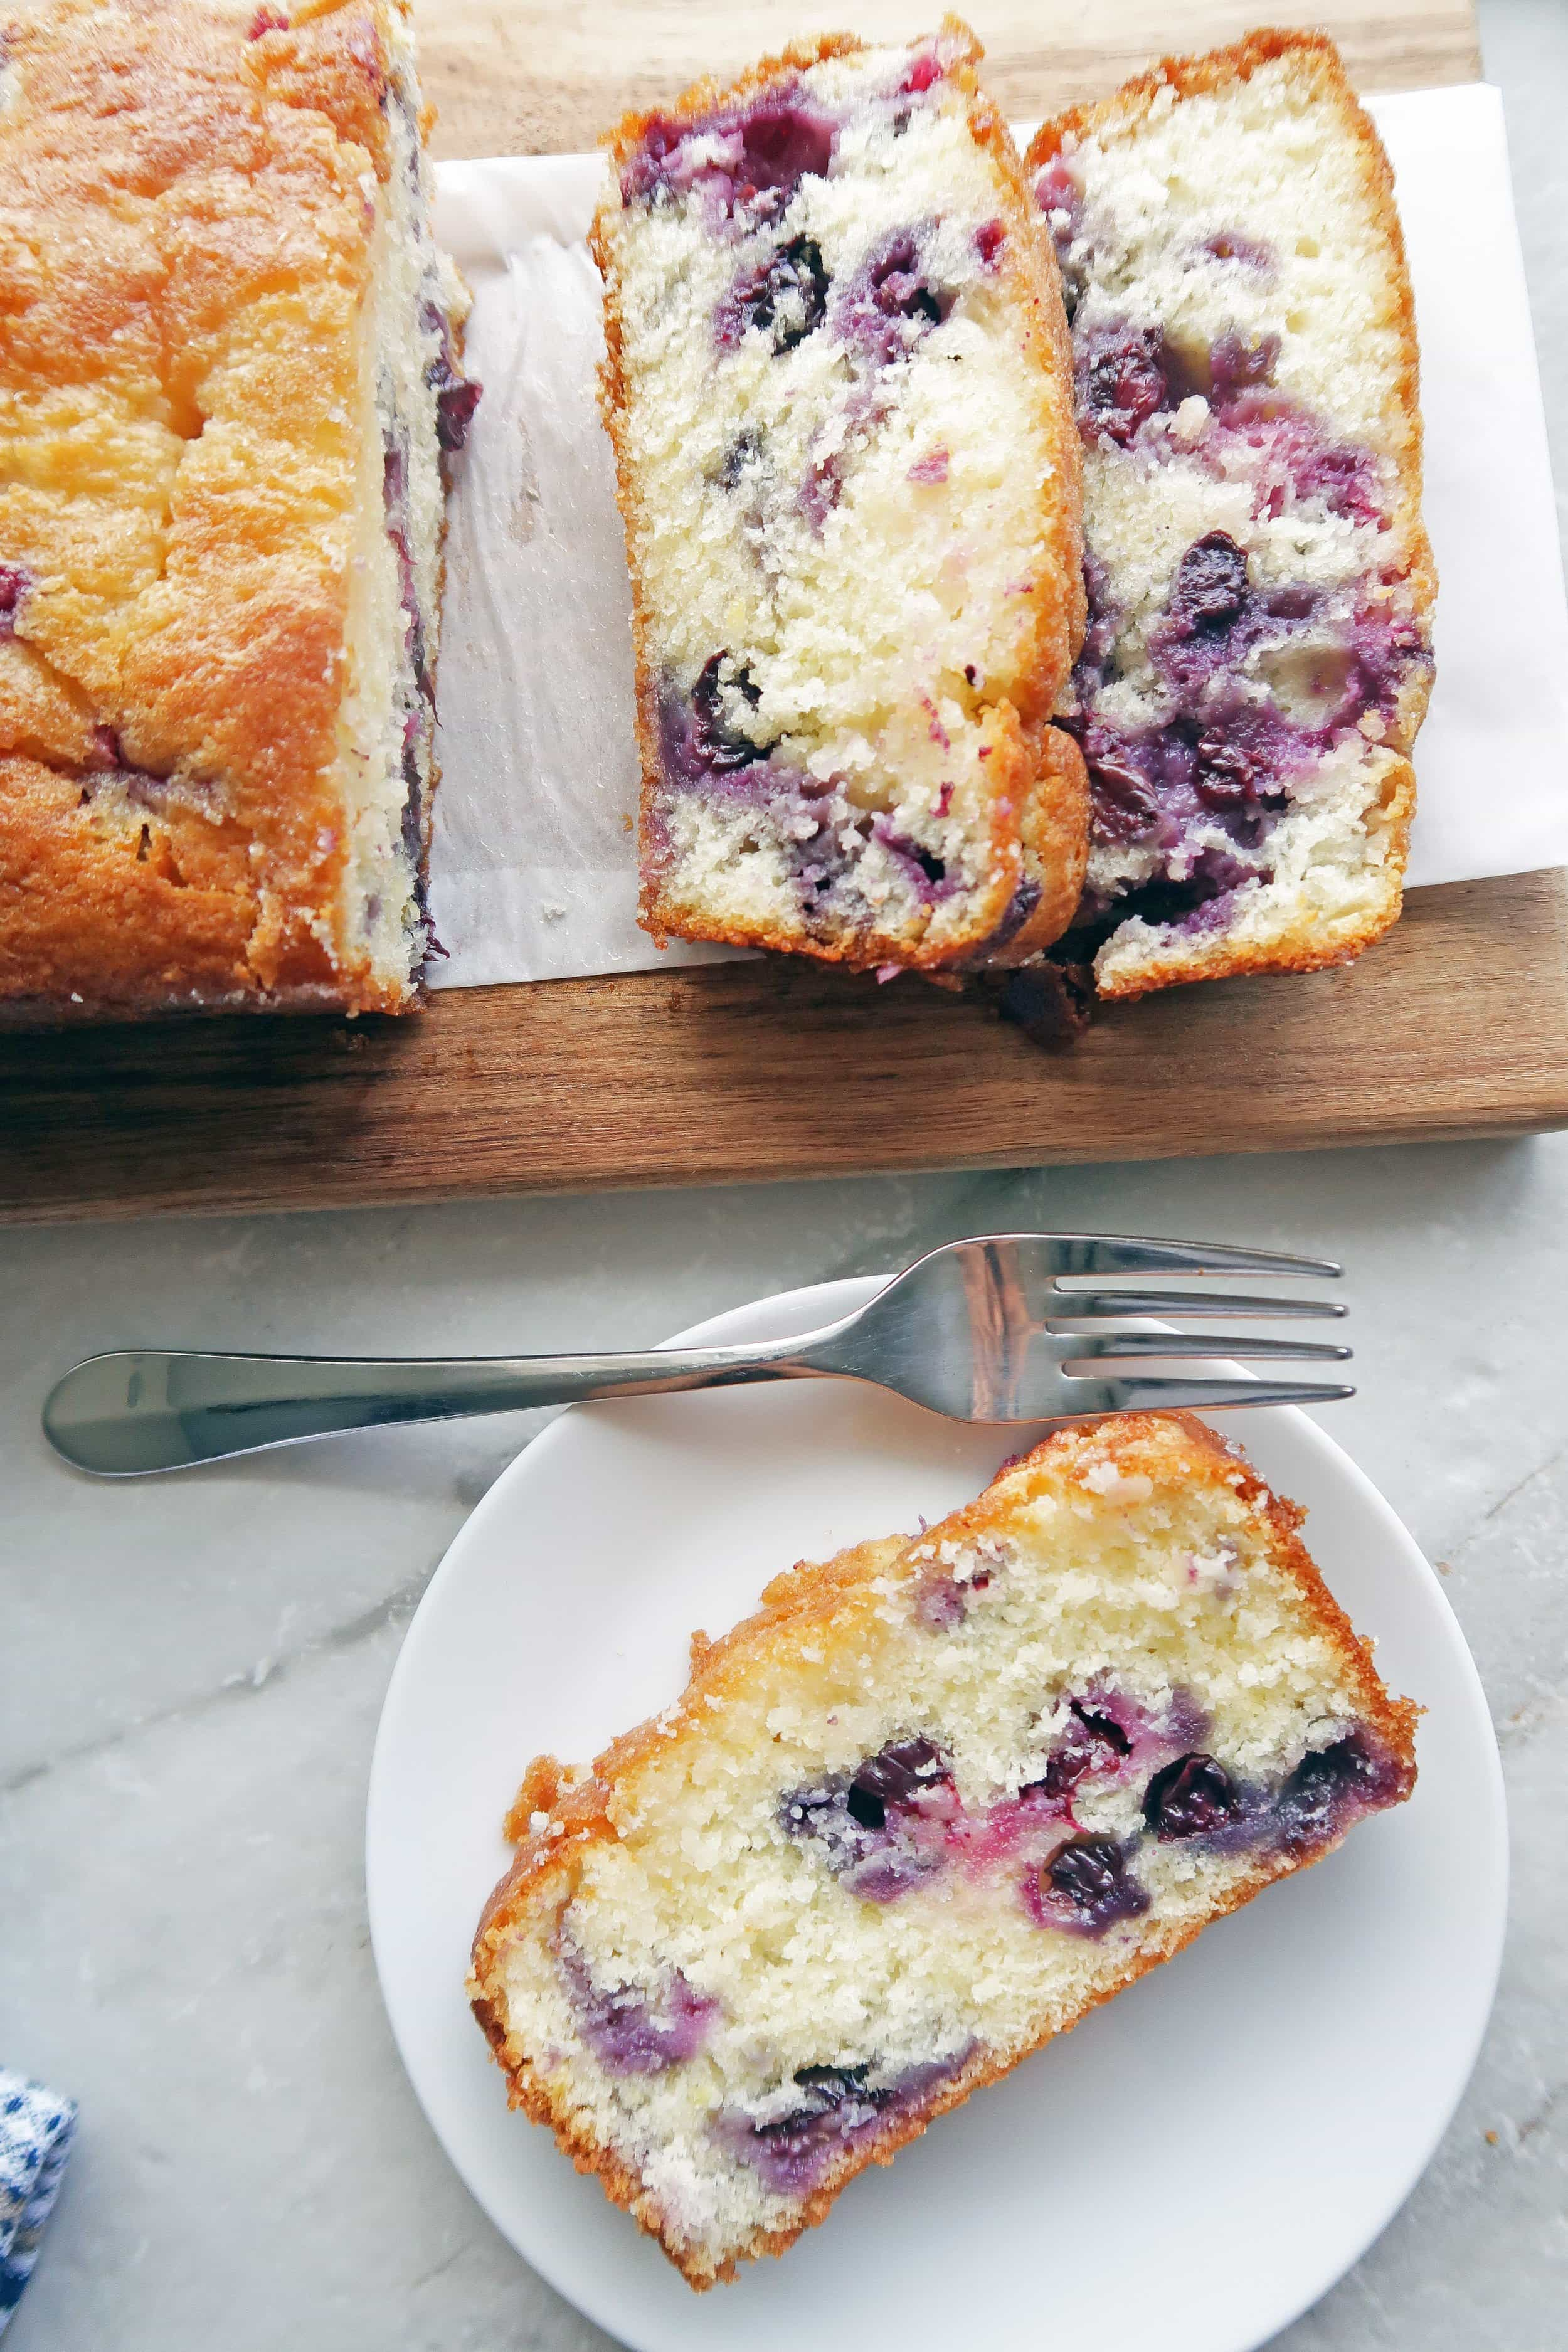 A slice of fluffy Classic Lemon Blueberry Loaf Cake on a white plate; the remaining sliced loaf cake on a long wooden board beside it.